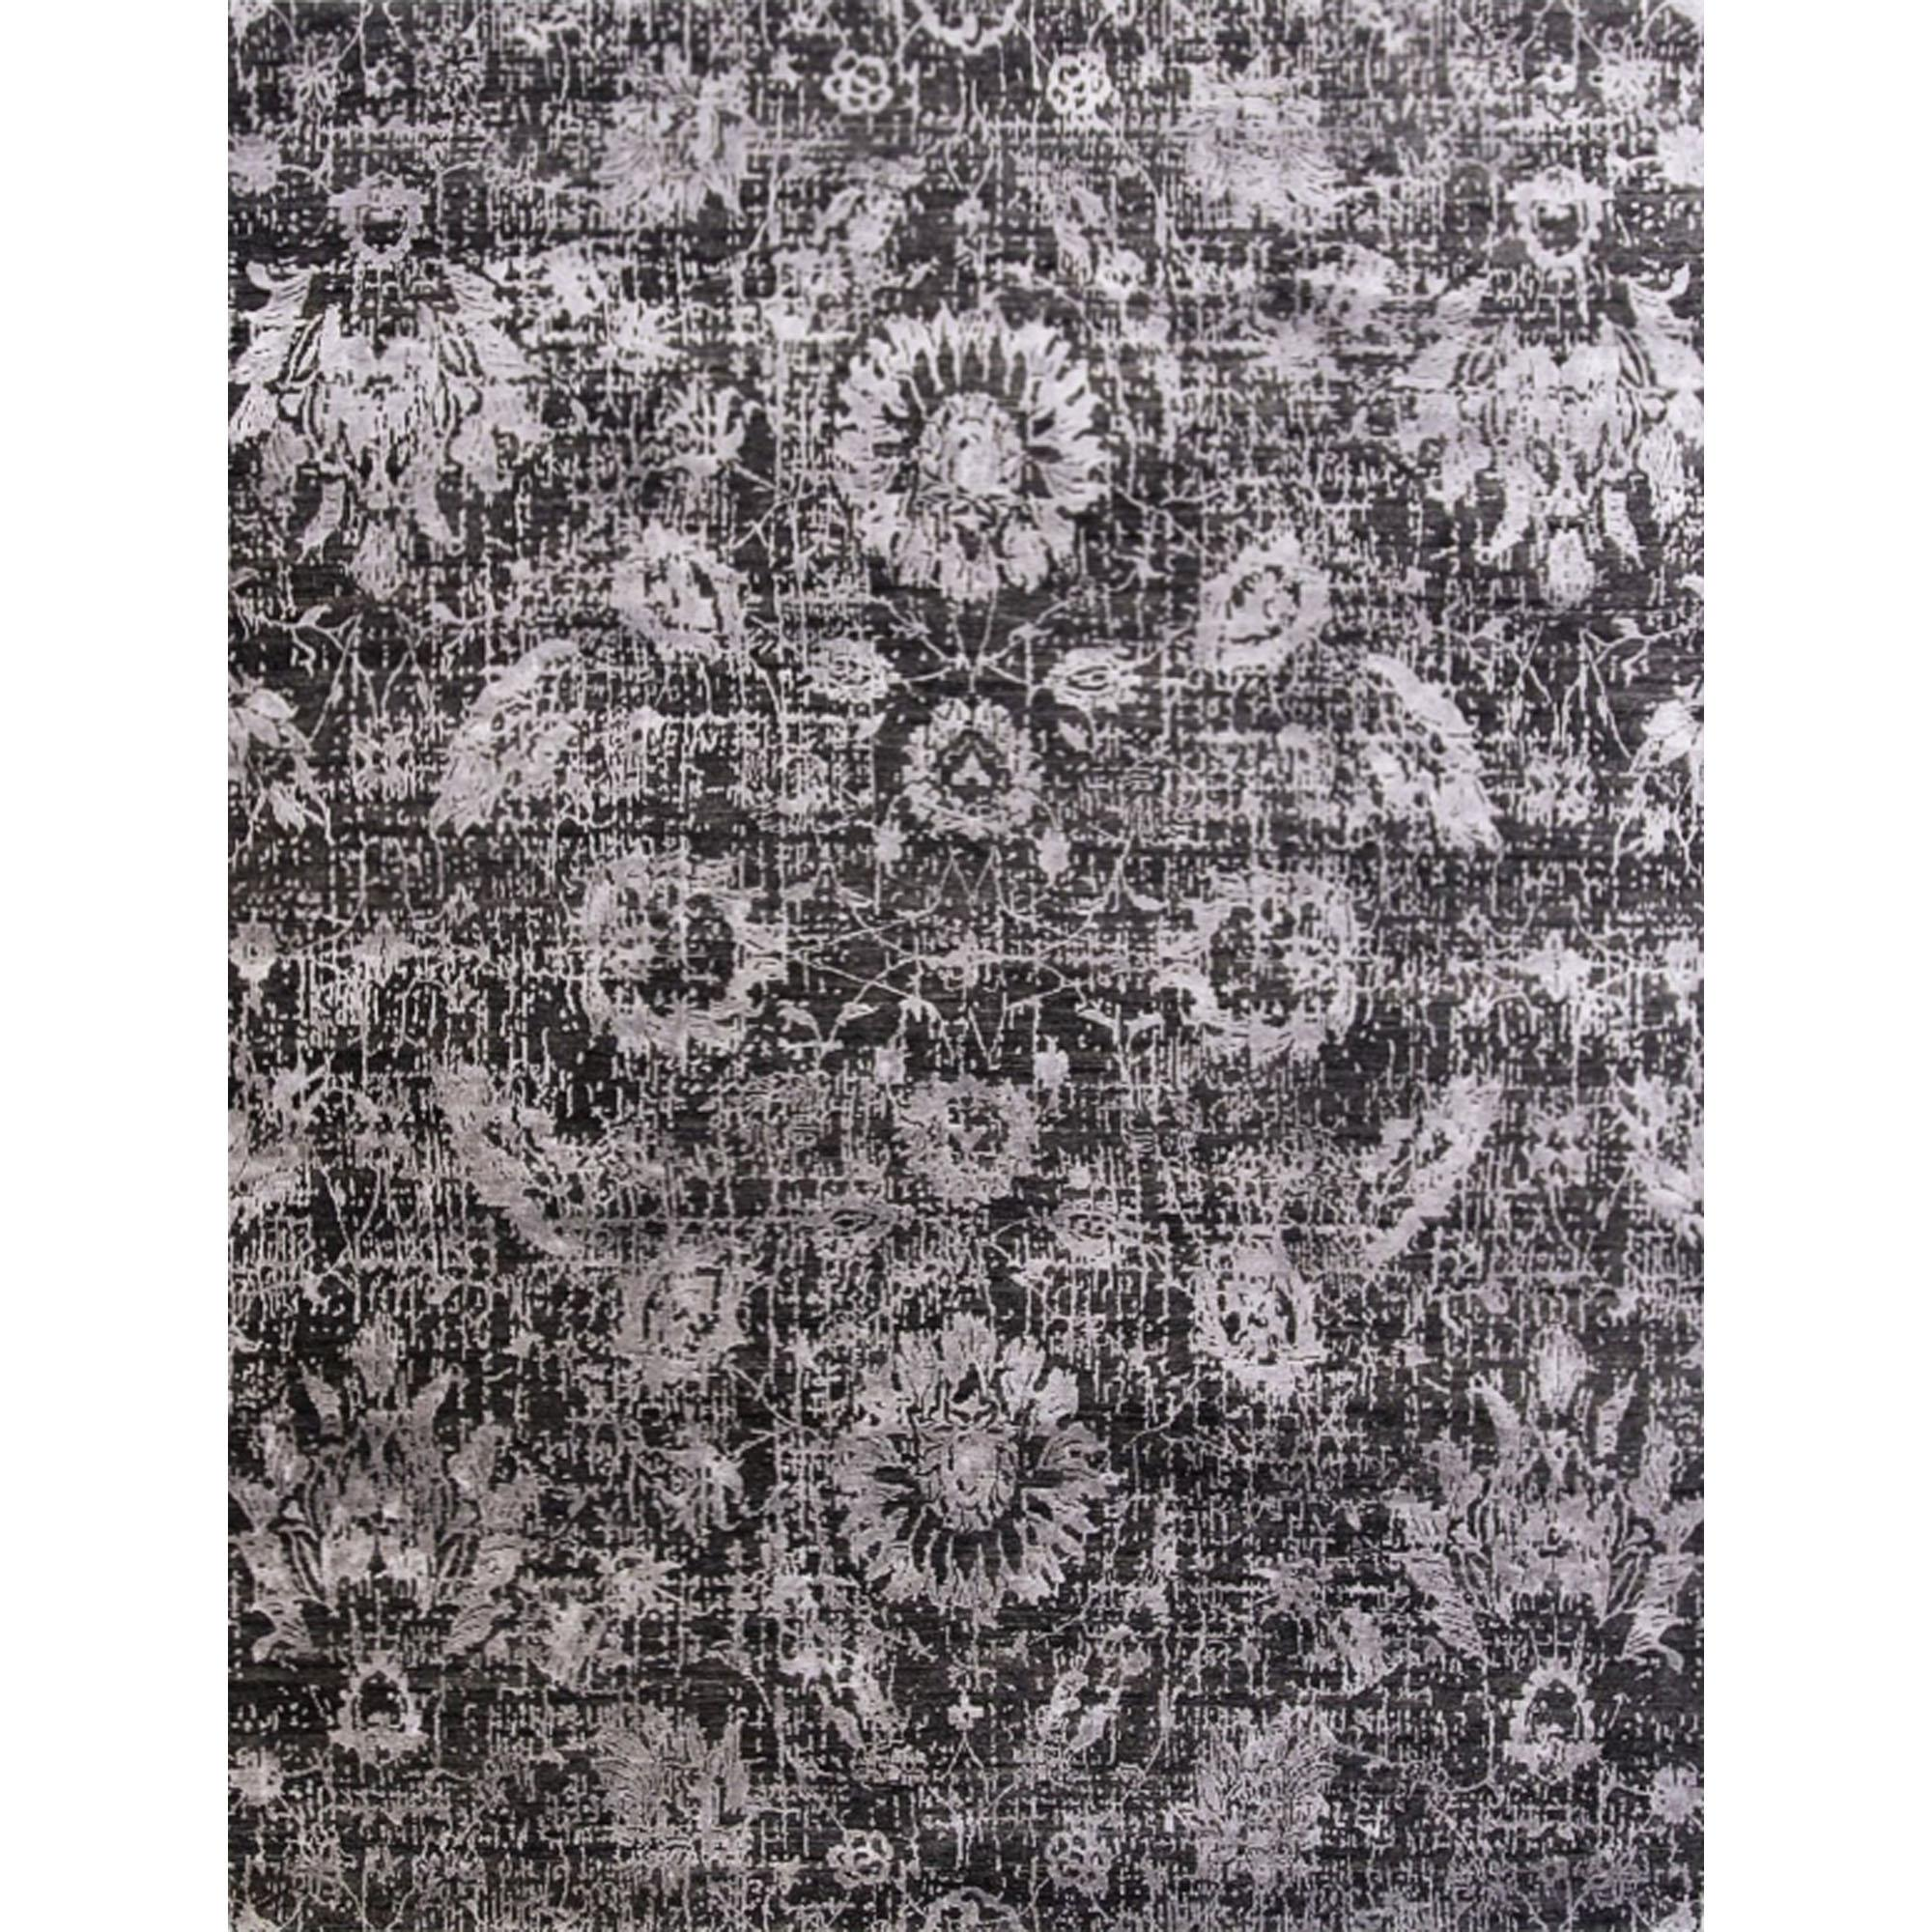 Chaos Theory By Kavi 8 x 10 Rug by JAIPUR Living at Sprintz Furniture